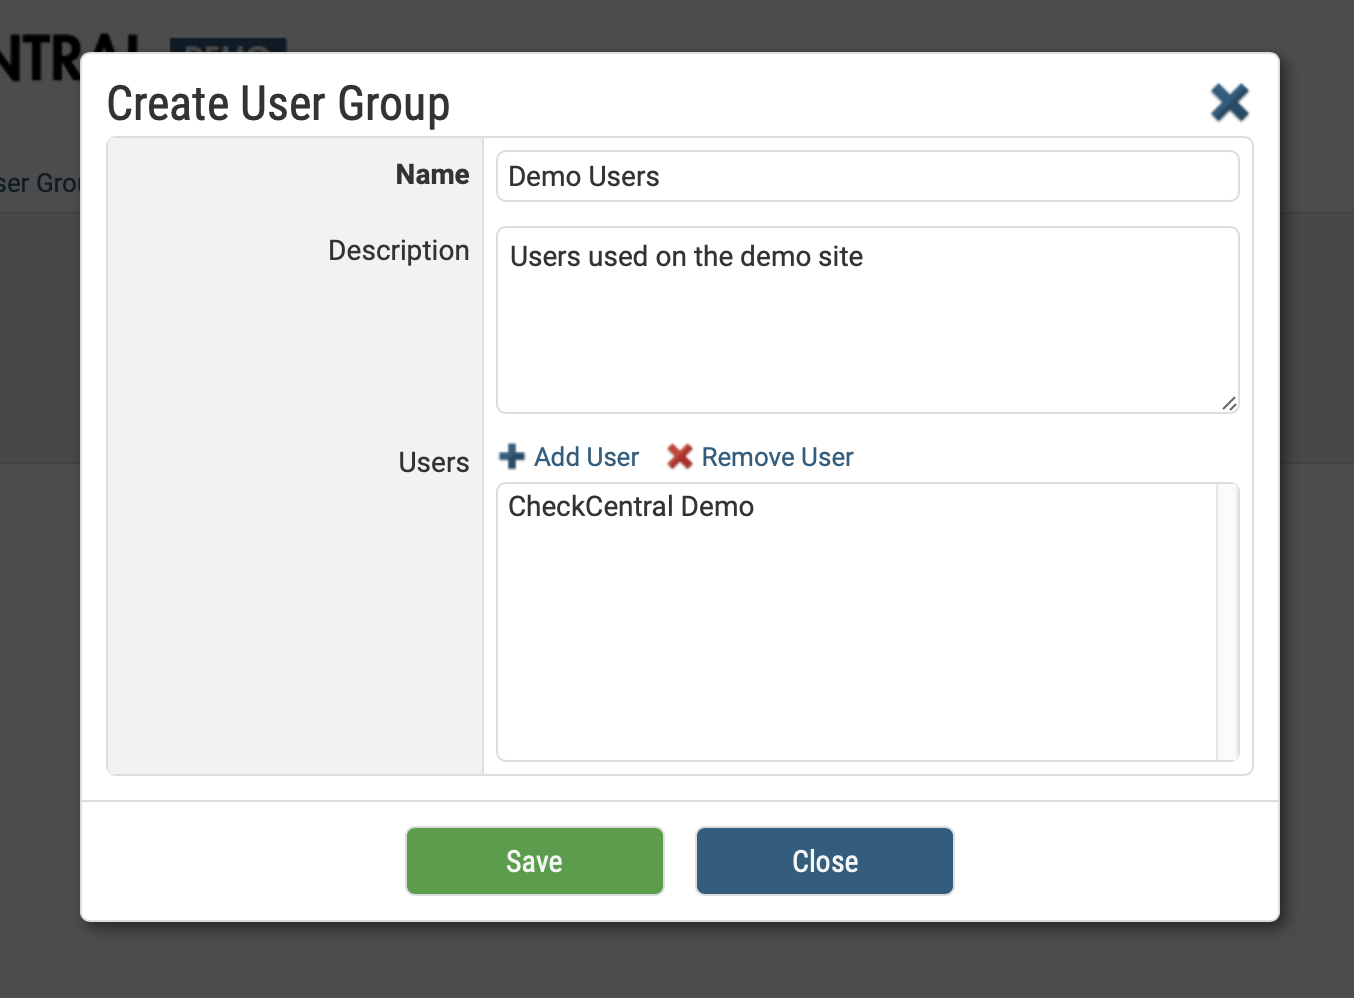 Create User Group